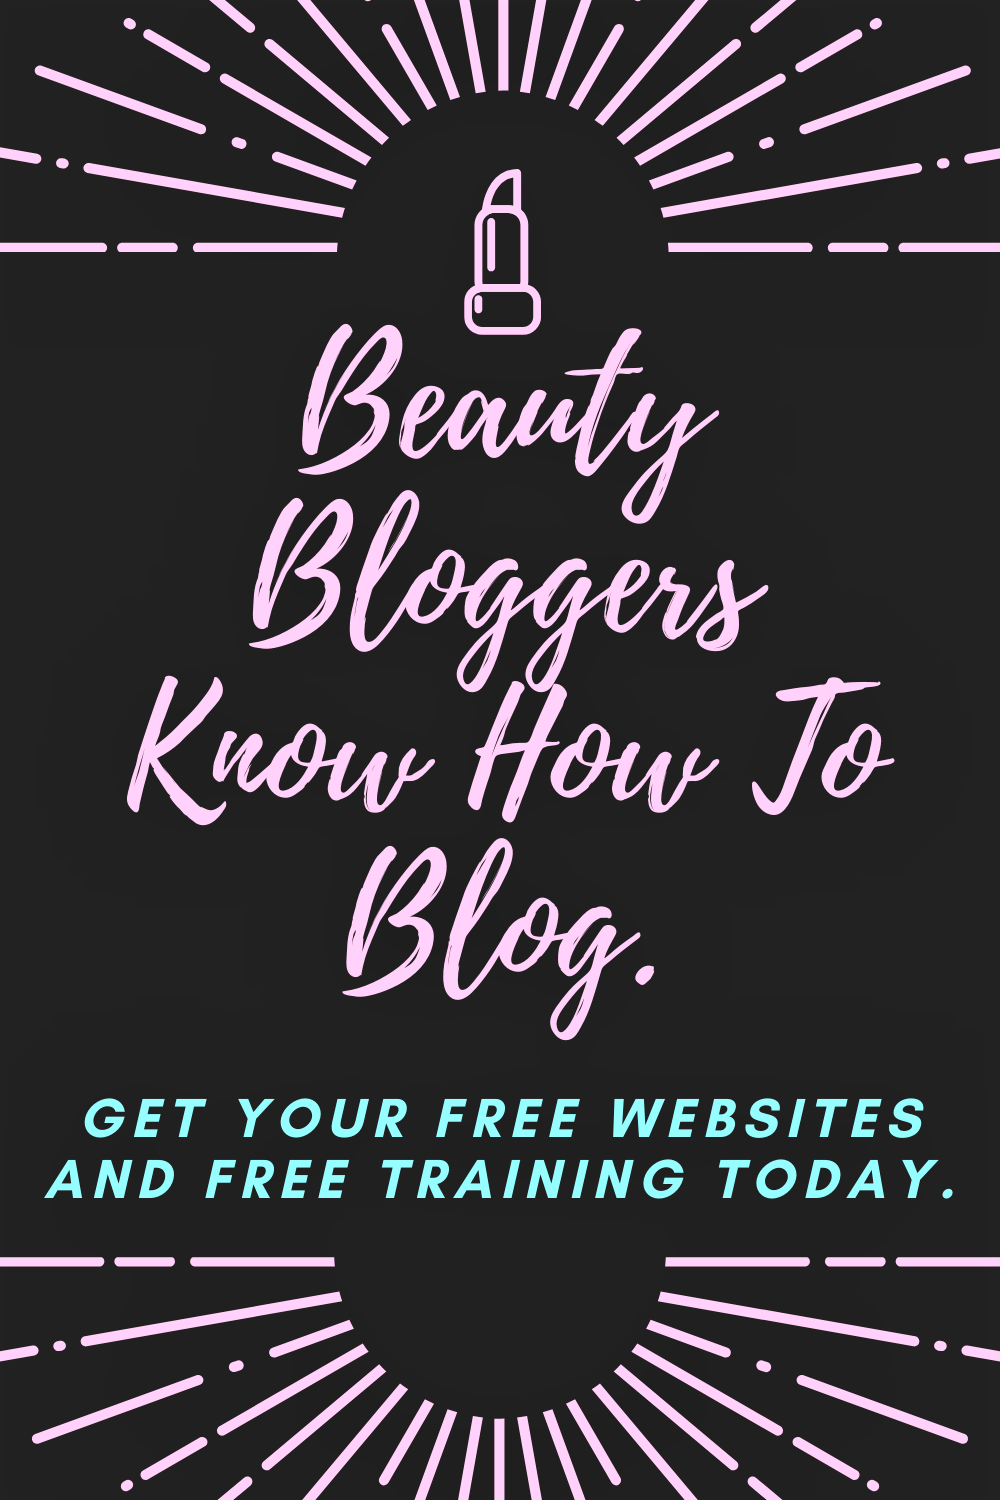 It's true beauty bloggers know how to blog. You can learn